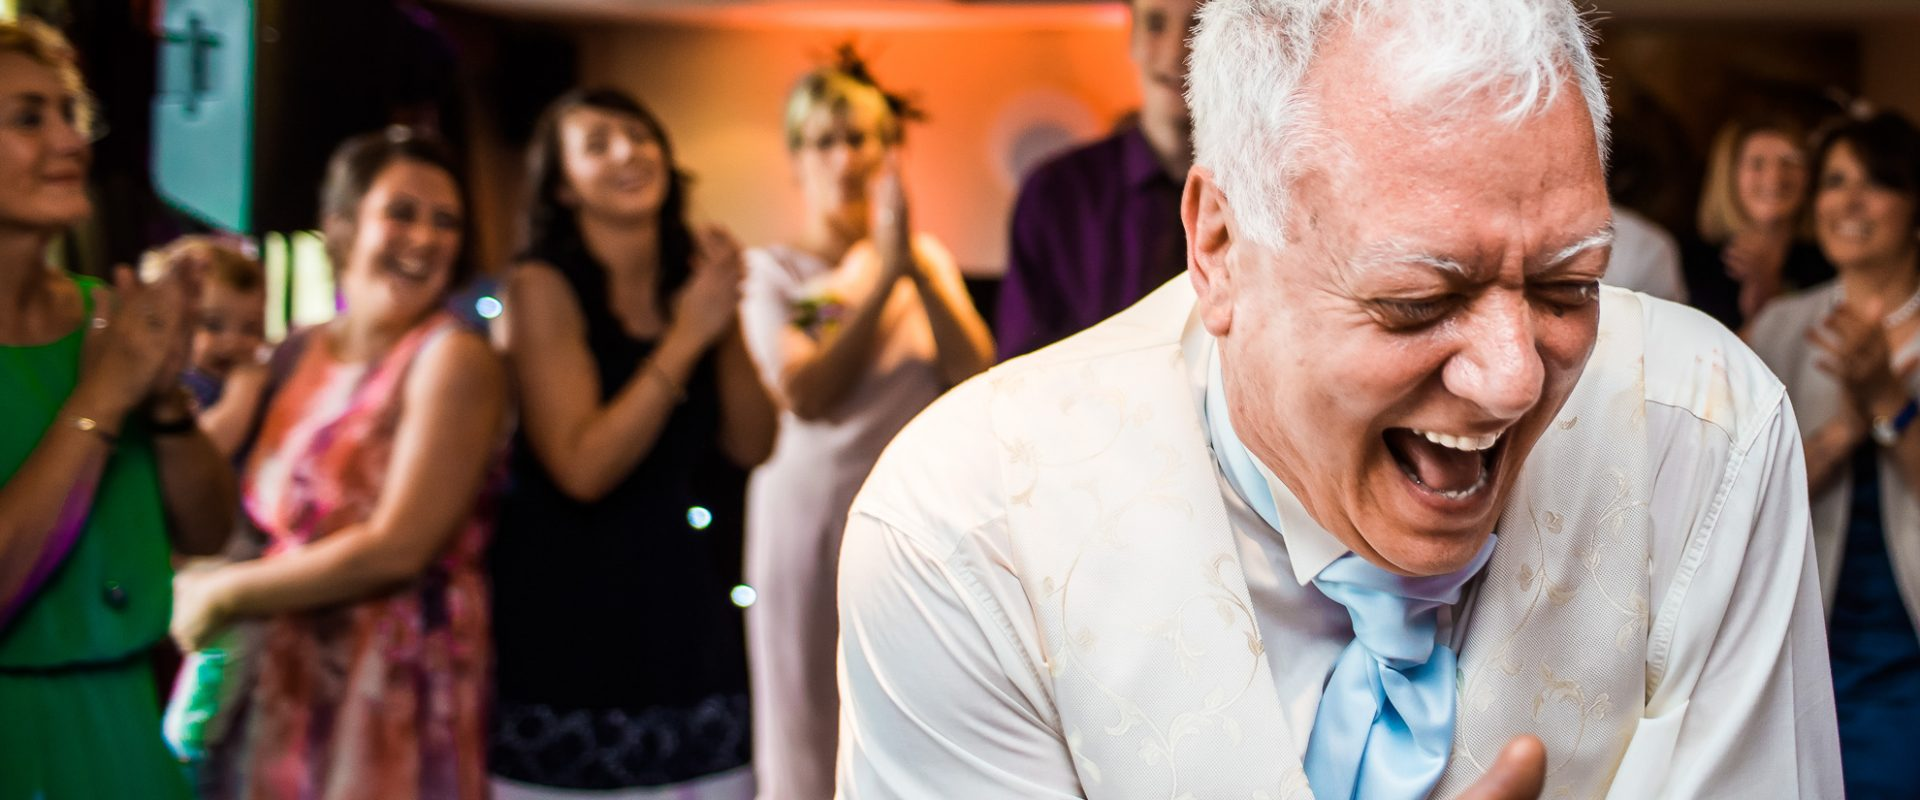 father of the bride laughing hysterically with guests in background